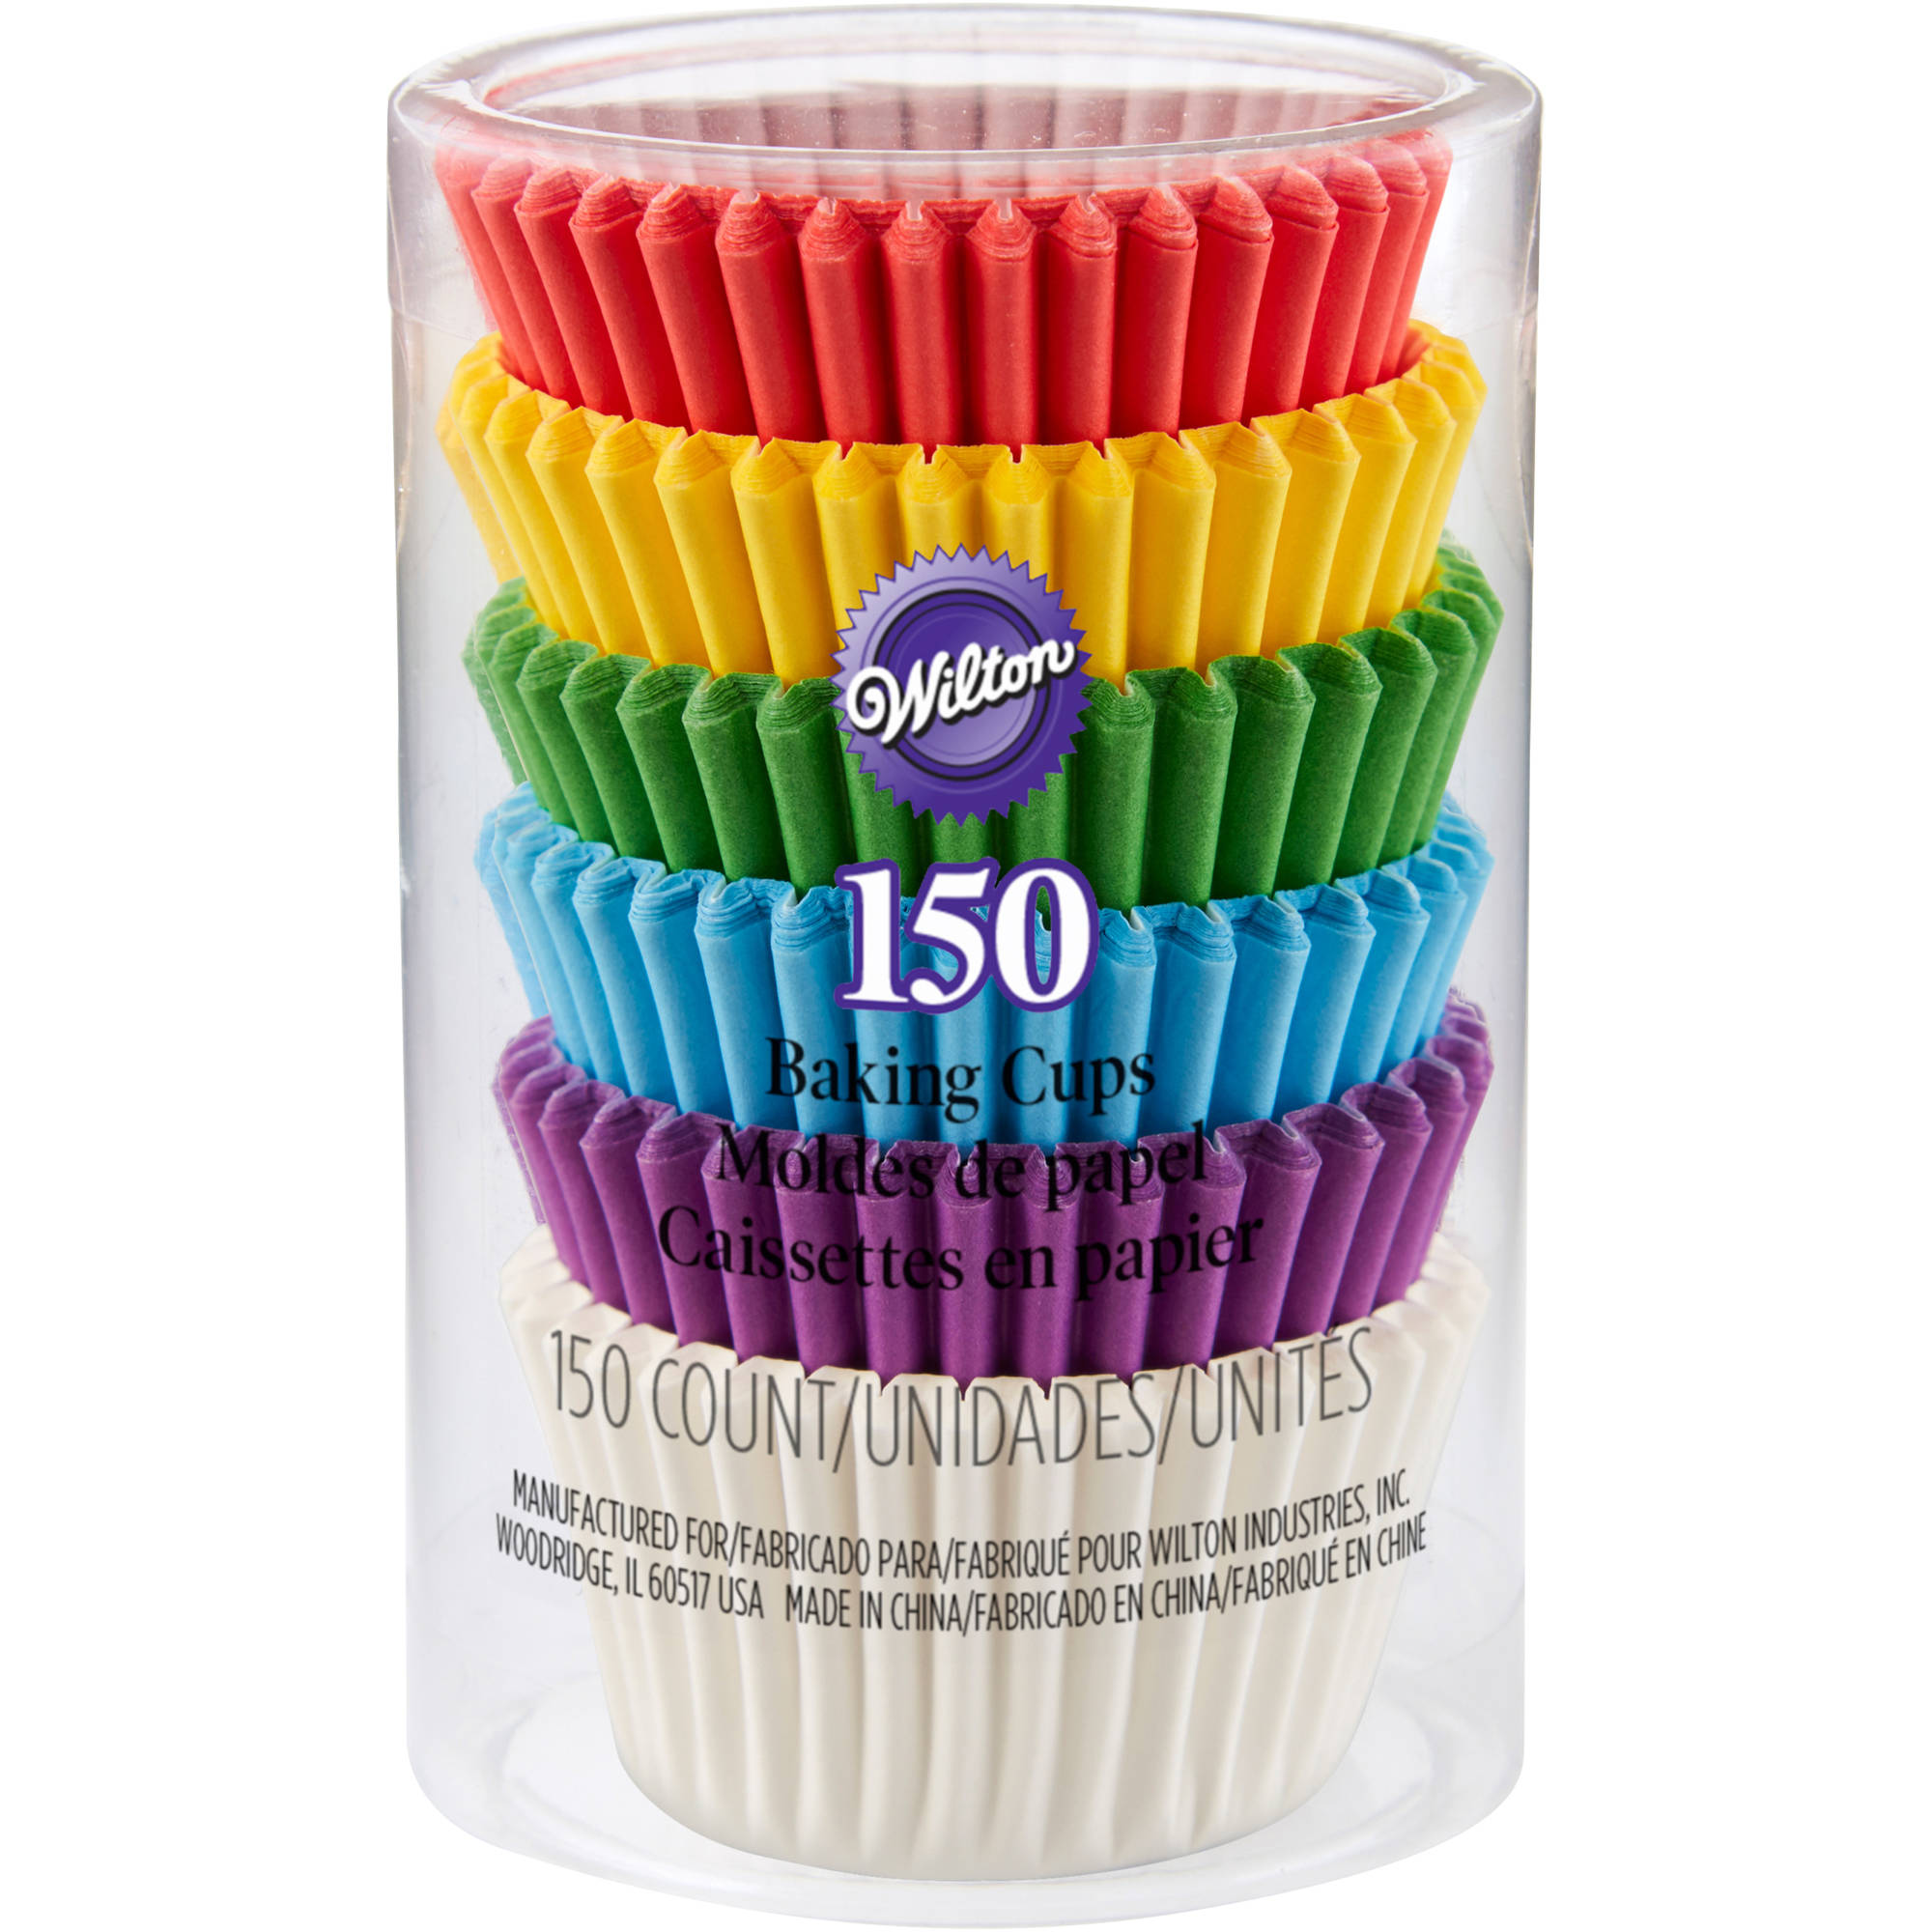 Wilton Rainbow Mini Cupcake Liners 150ct, 415-5171